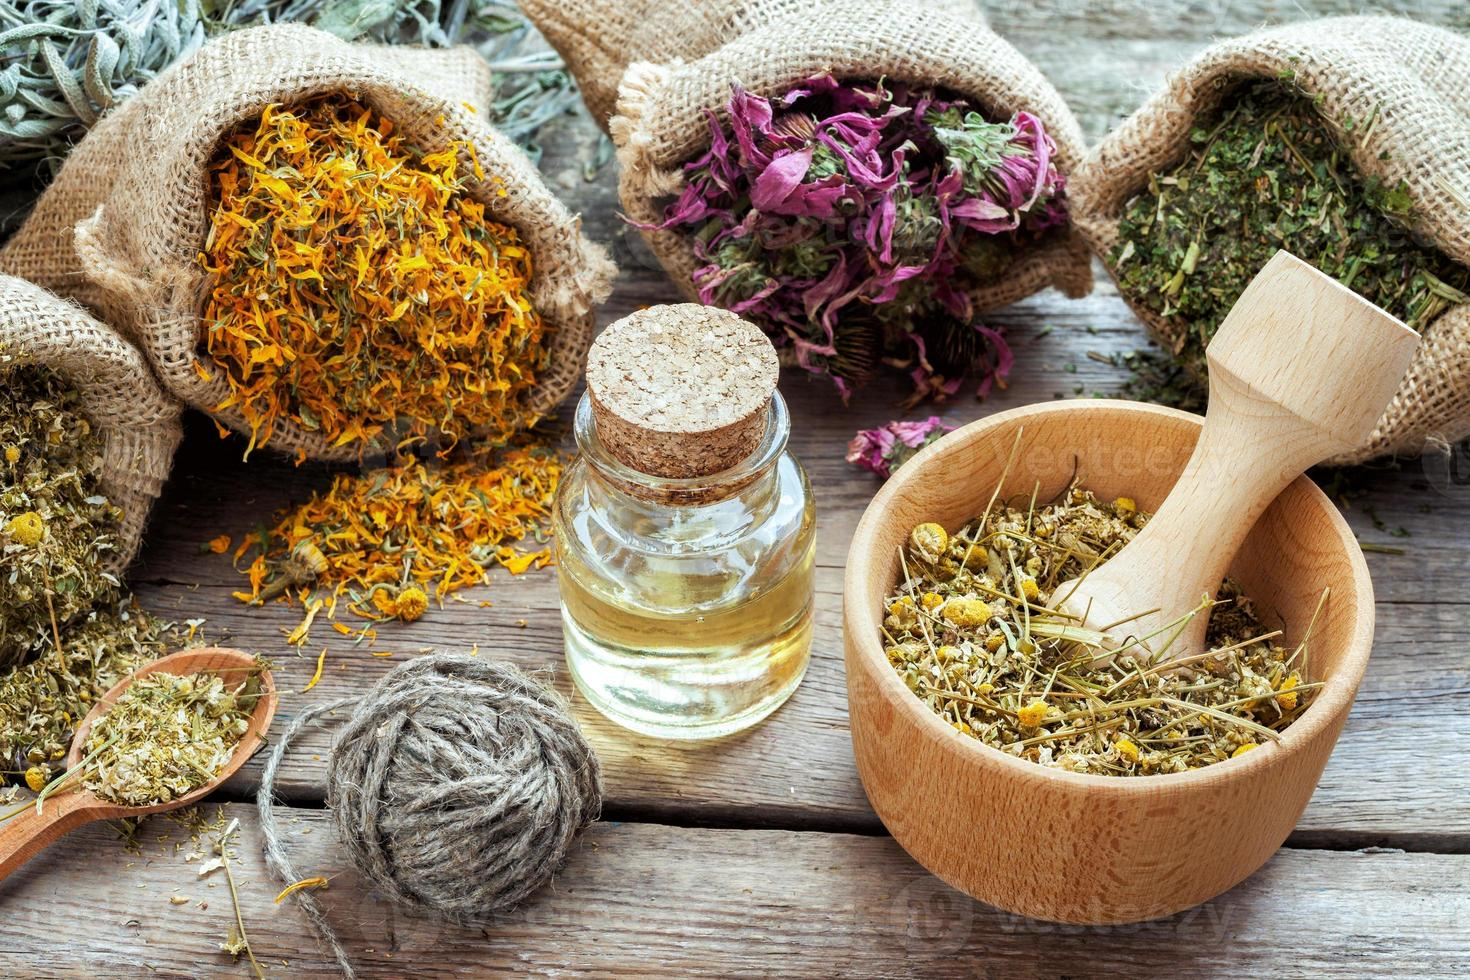 Healing herbs in hessian bags, mortar with chamomile and oil photo